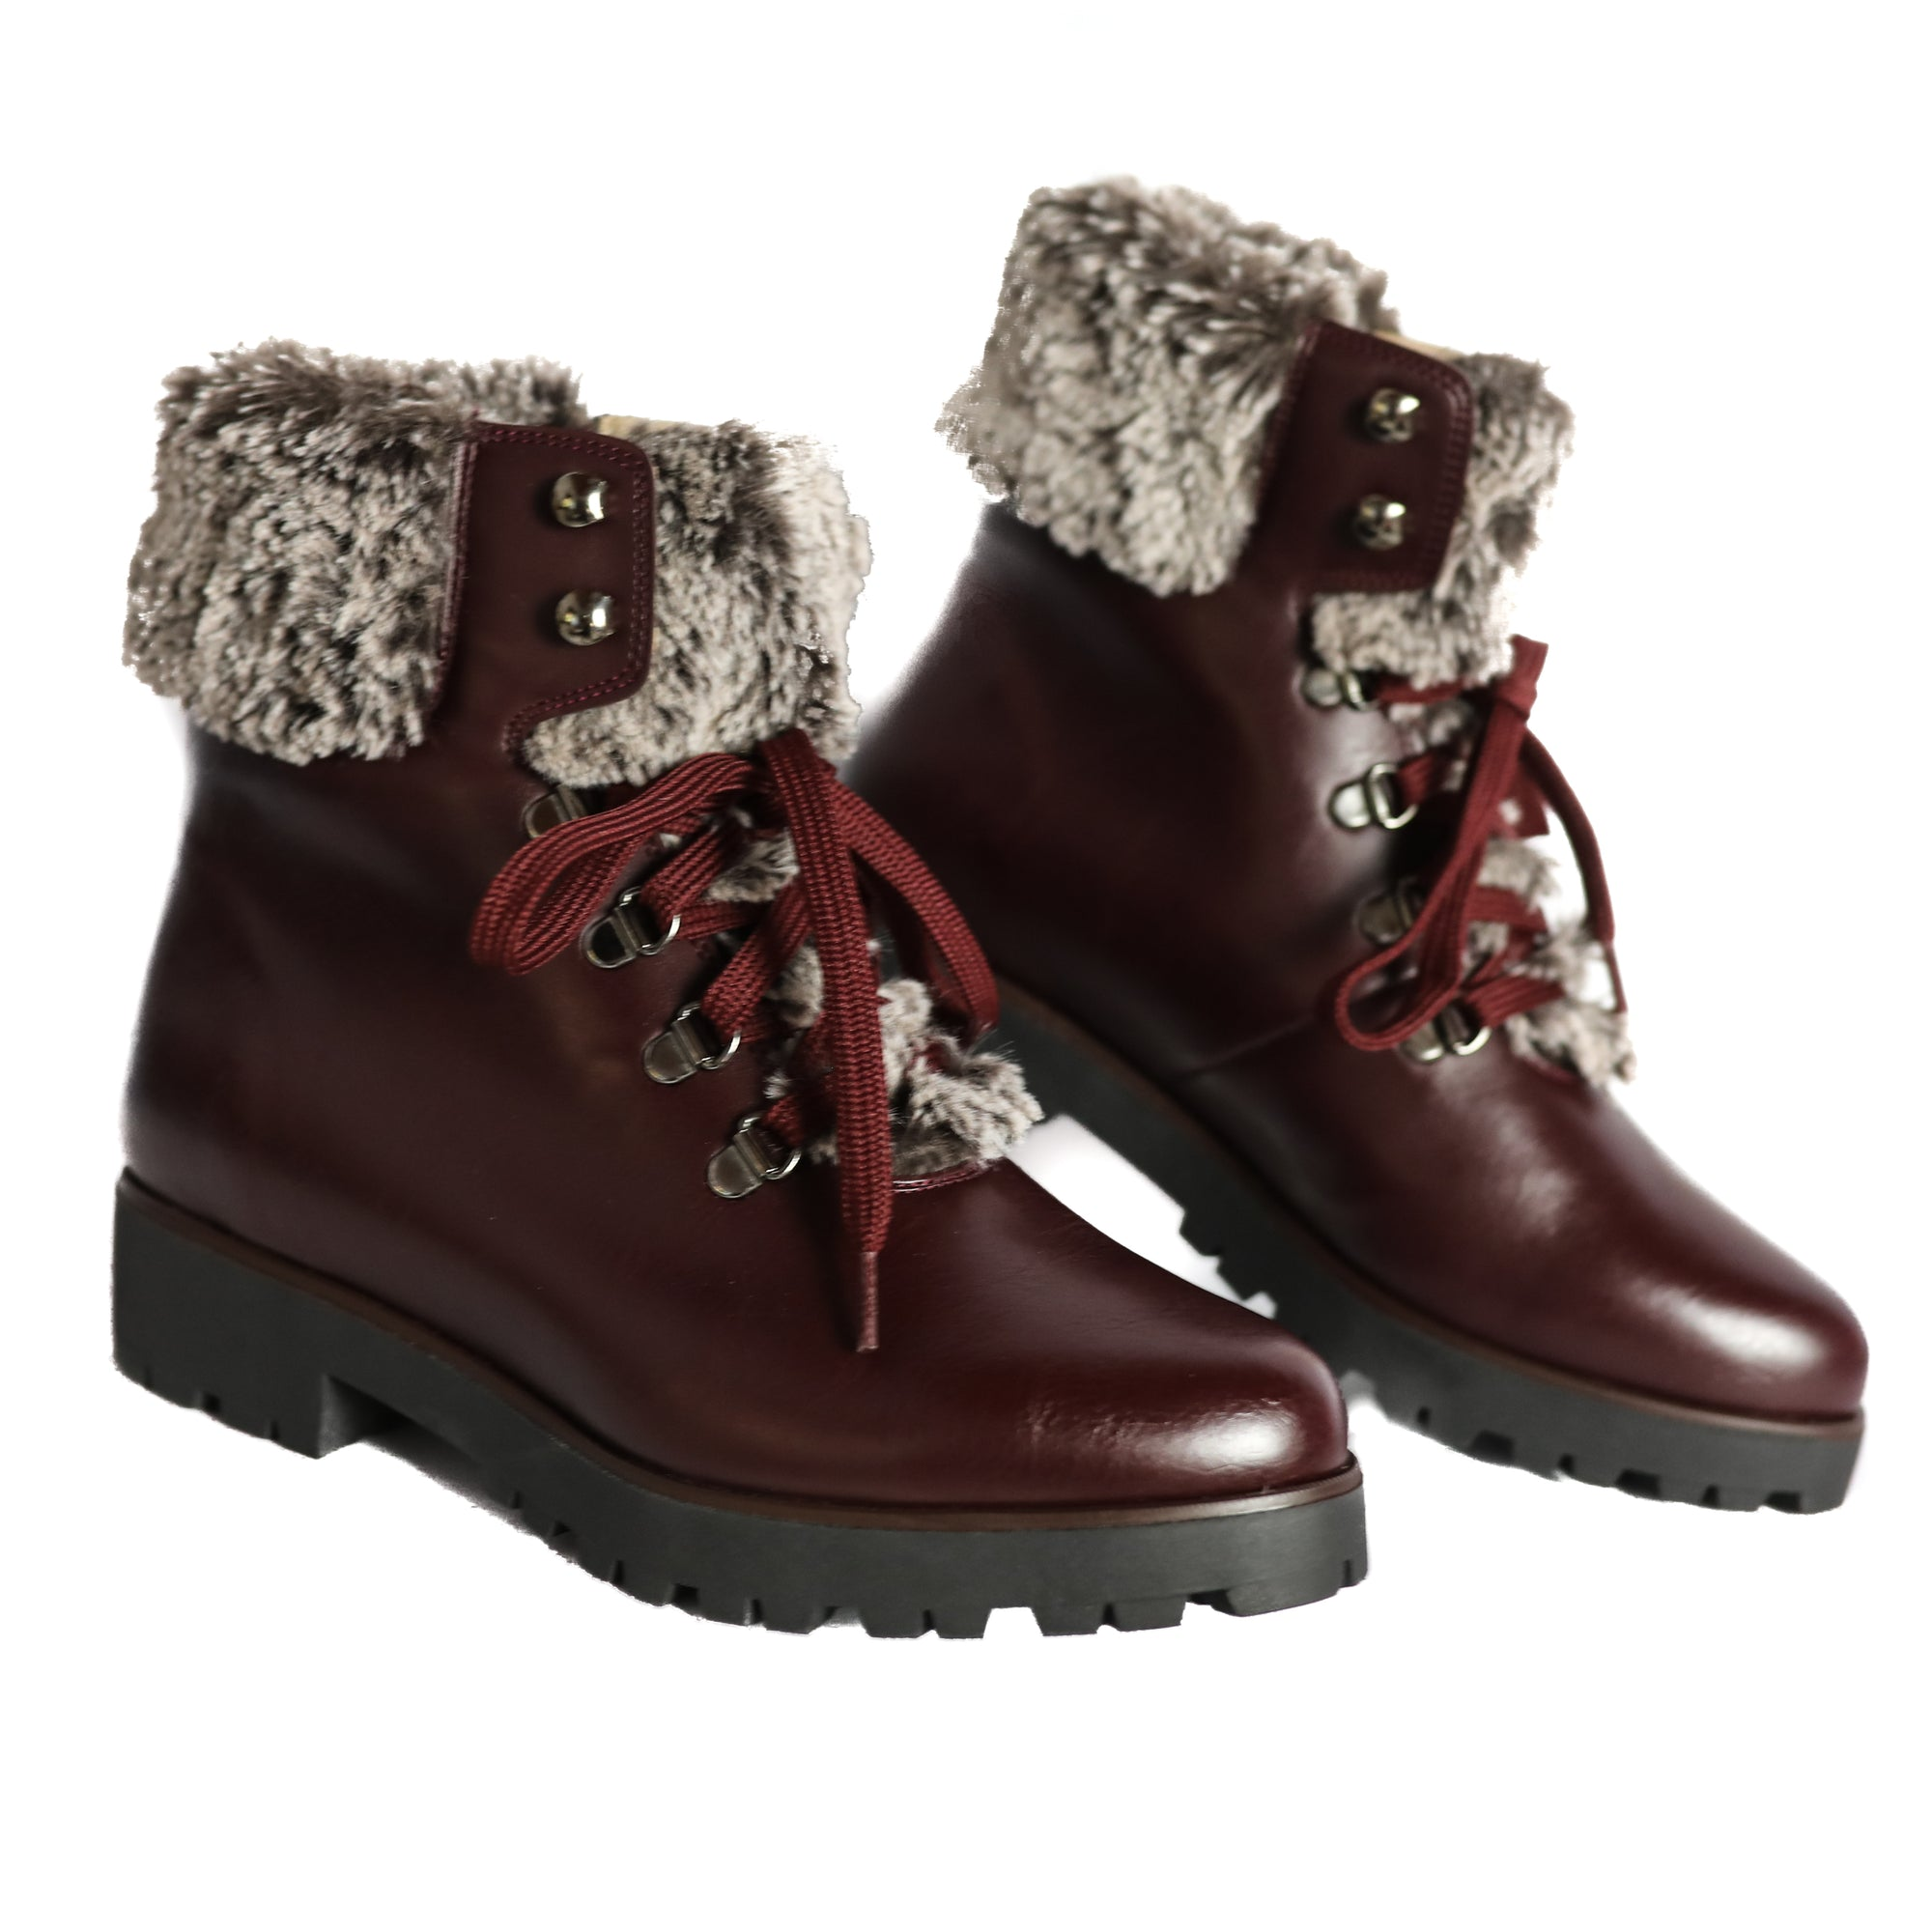 LAST CALL OSLO WINTER COMBAT BURGUNDY